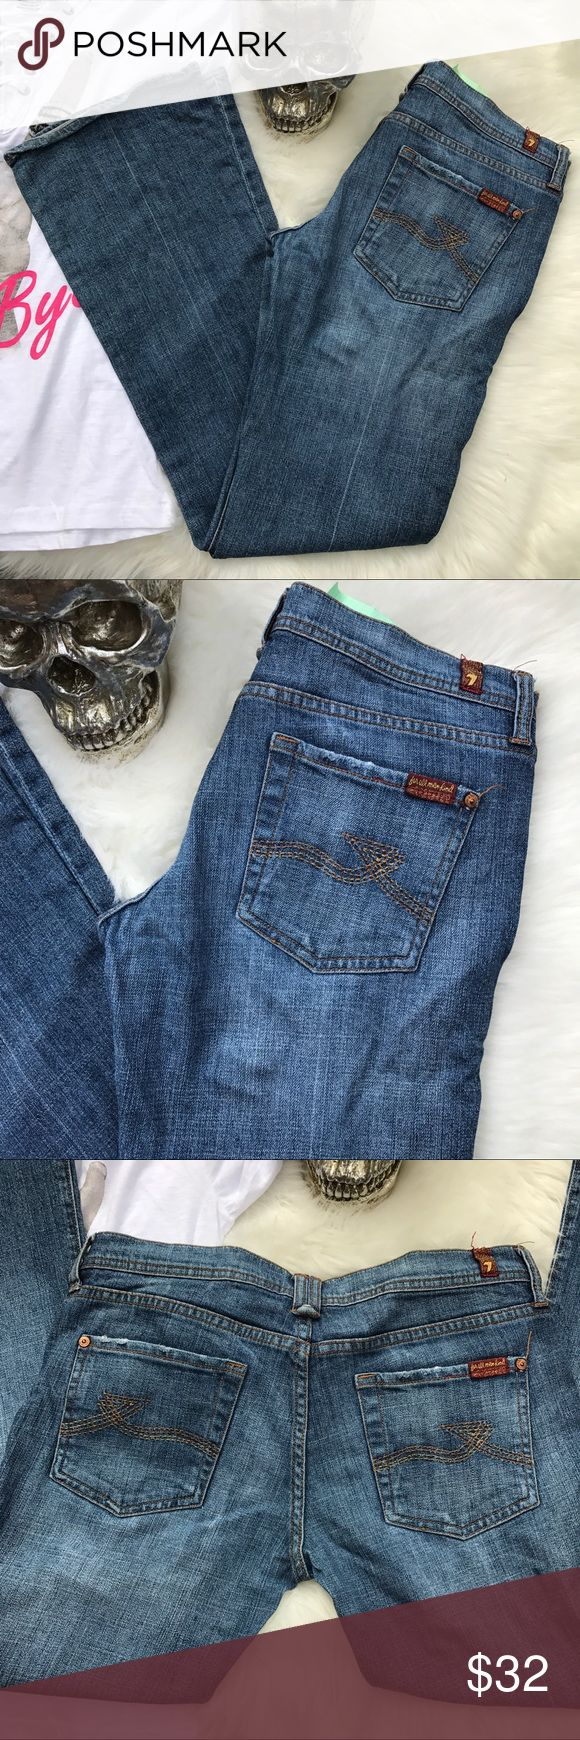 7 for all mankind rocker jeans Great used condition .  7 for all mankind medium light wash distressed rocker jeans .  The perfect every day jeans with your favorite shirt . Preloved no flaws .  Inseam | 31 inches  Rise | 7 1/2 inches   💙 please use the offer button  🛍 BUNDLE FOR 10% OFF •   🚭smoke free  🌟 5 star rating   www.thethugwife.com 💀 @thethugwifeboutique             🚫 🙅🏻 N O   TRADES 🙅🏻 🚫 7 For All Mankind Jeans